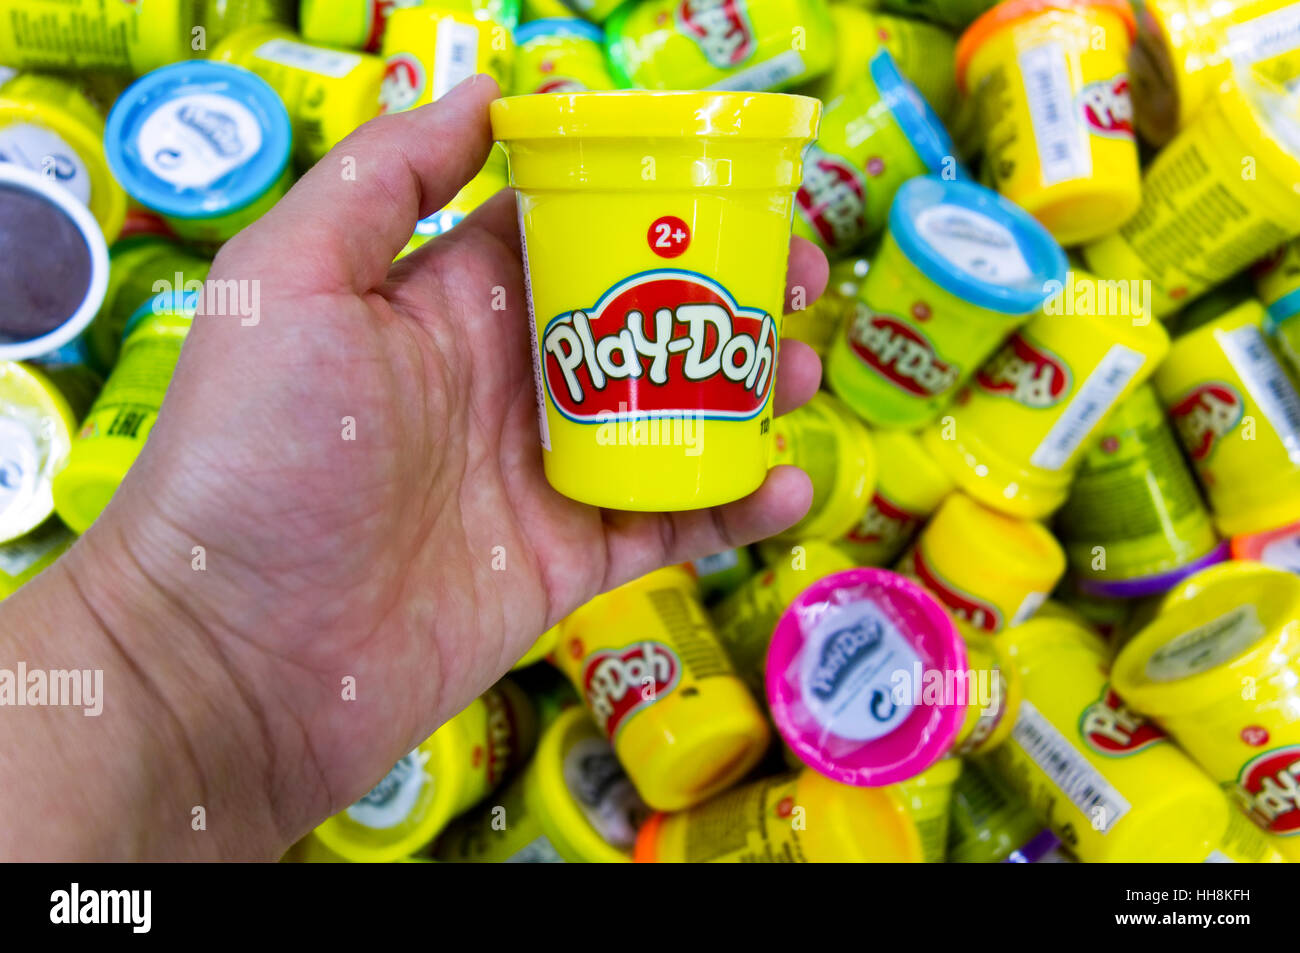 Paphos, Cyprus - October 18, 2016 Woman hand with Play-Doh can against heap of Play-Doh containers with different - Stock Image